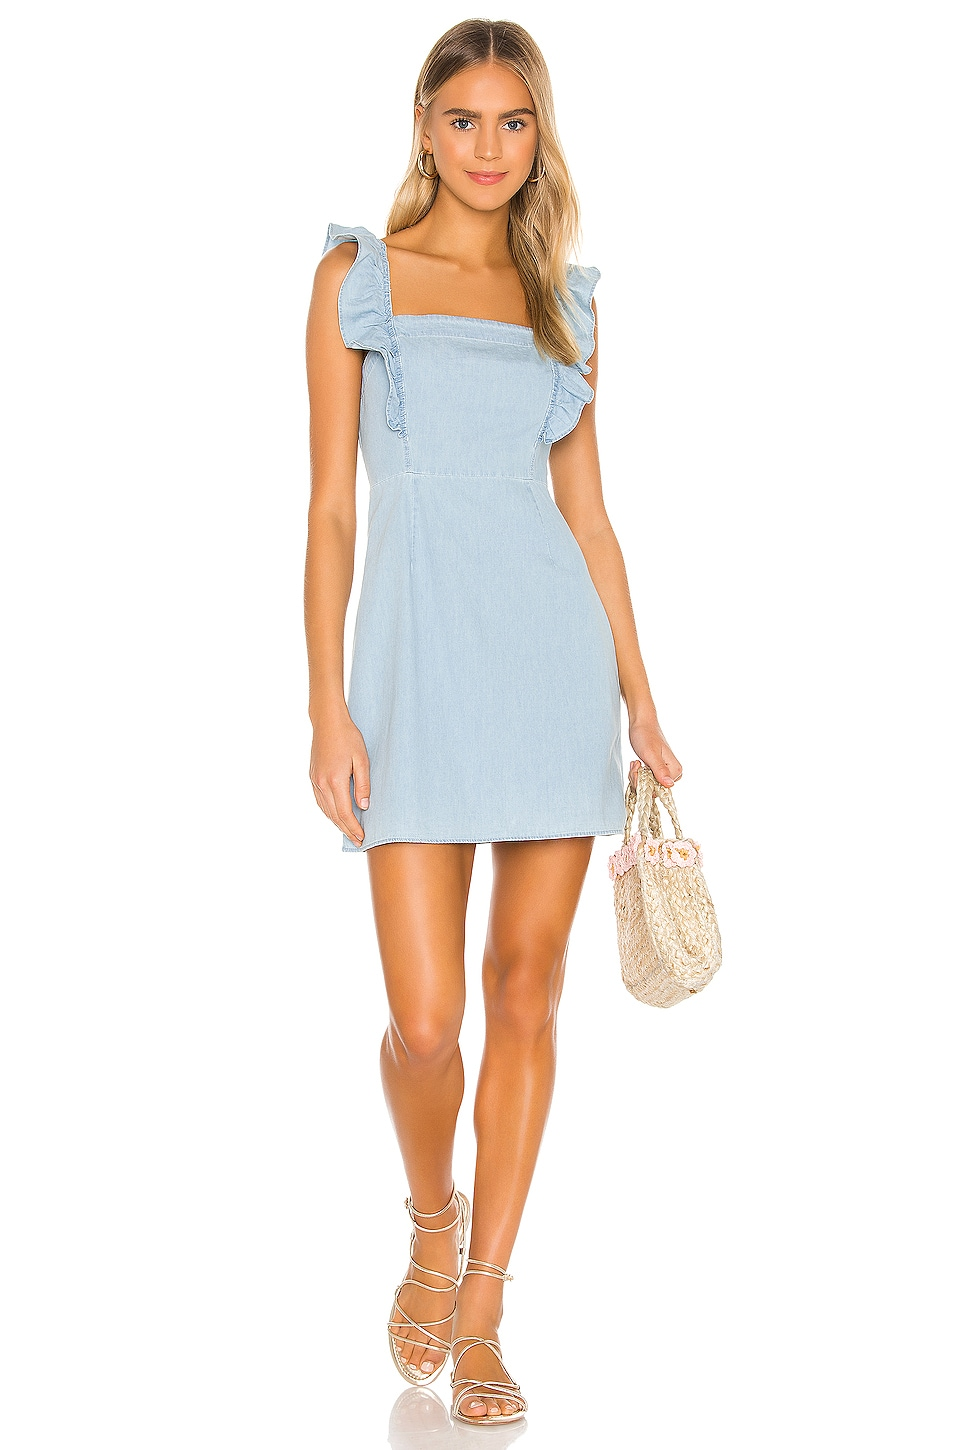 JACK by BB Dakota Chambray All Day Dress             BB Dakota                                                                                                       CA$ 108.89 6